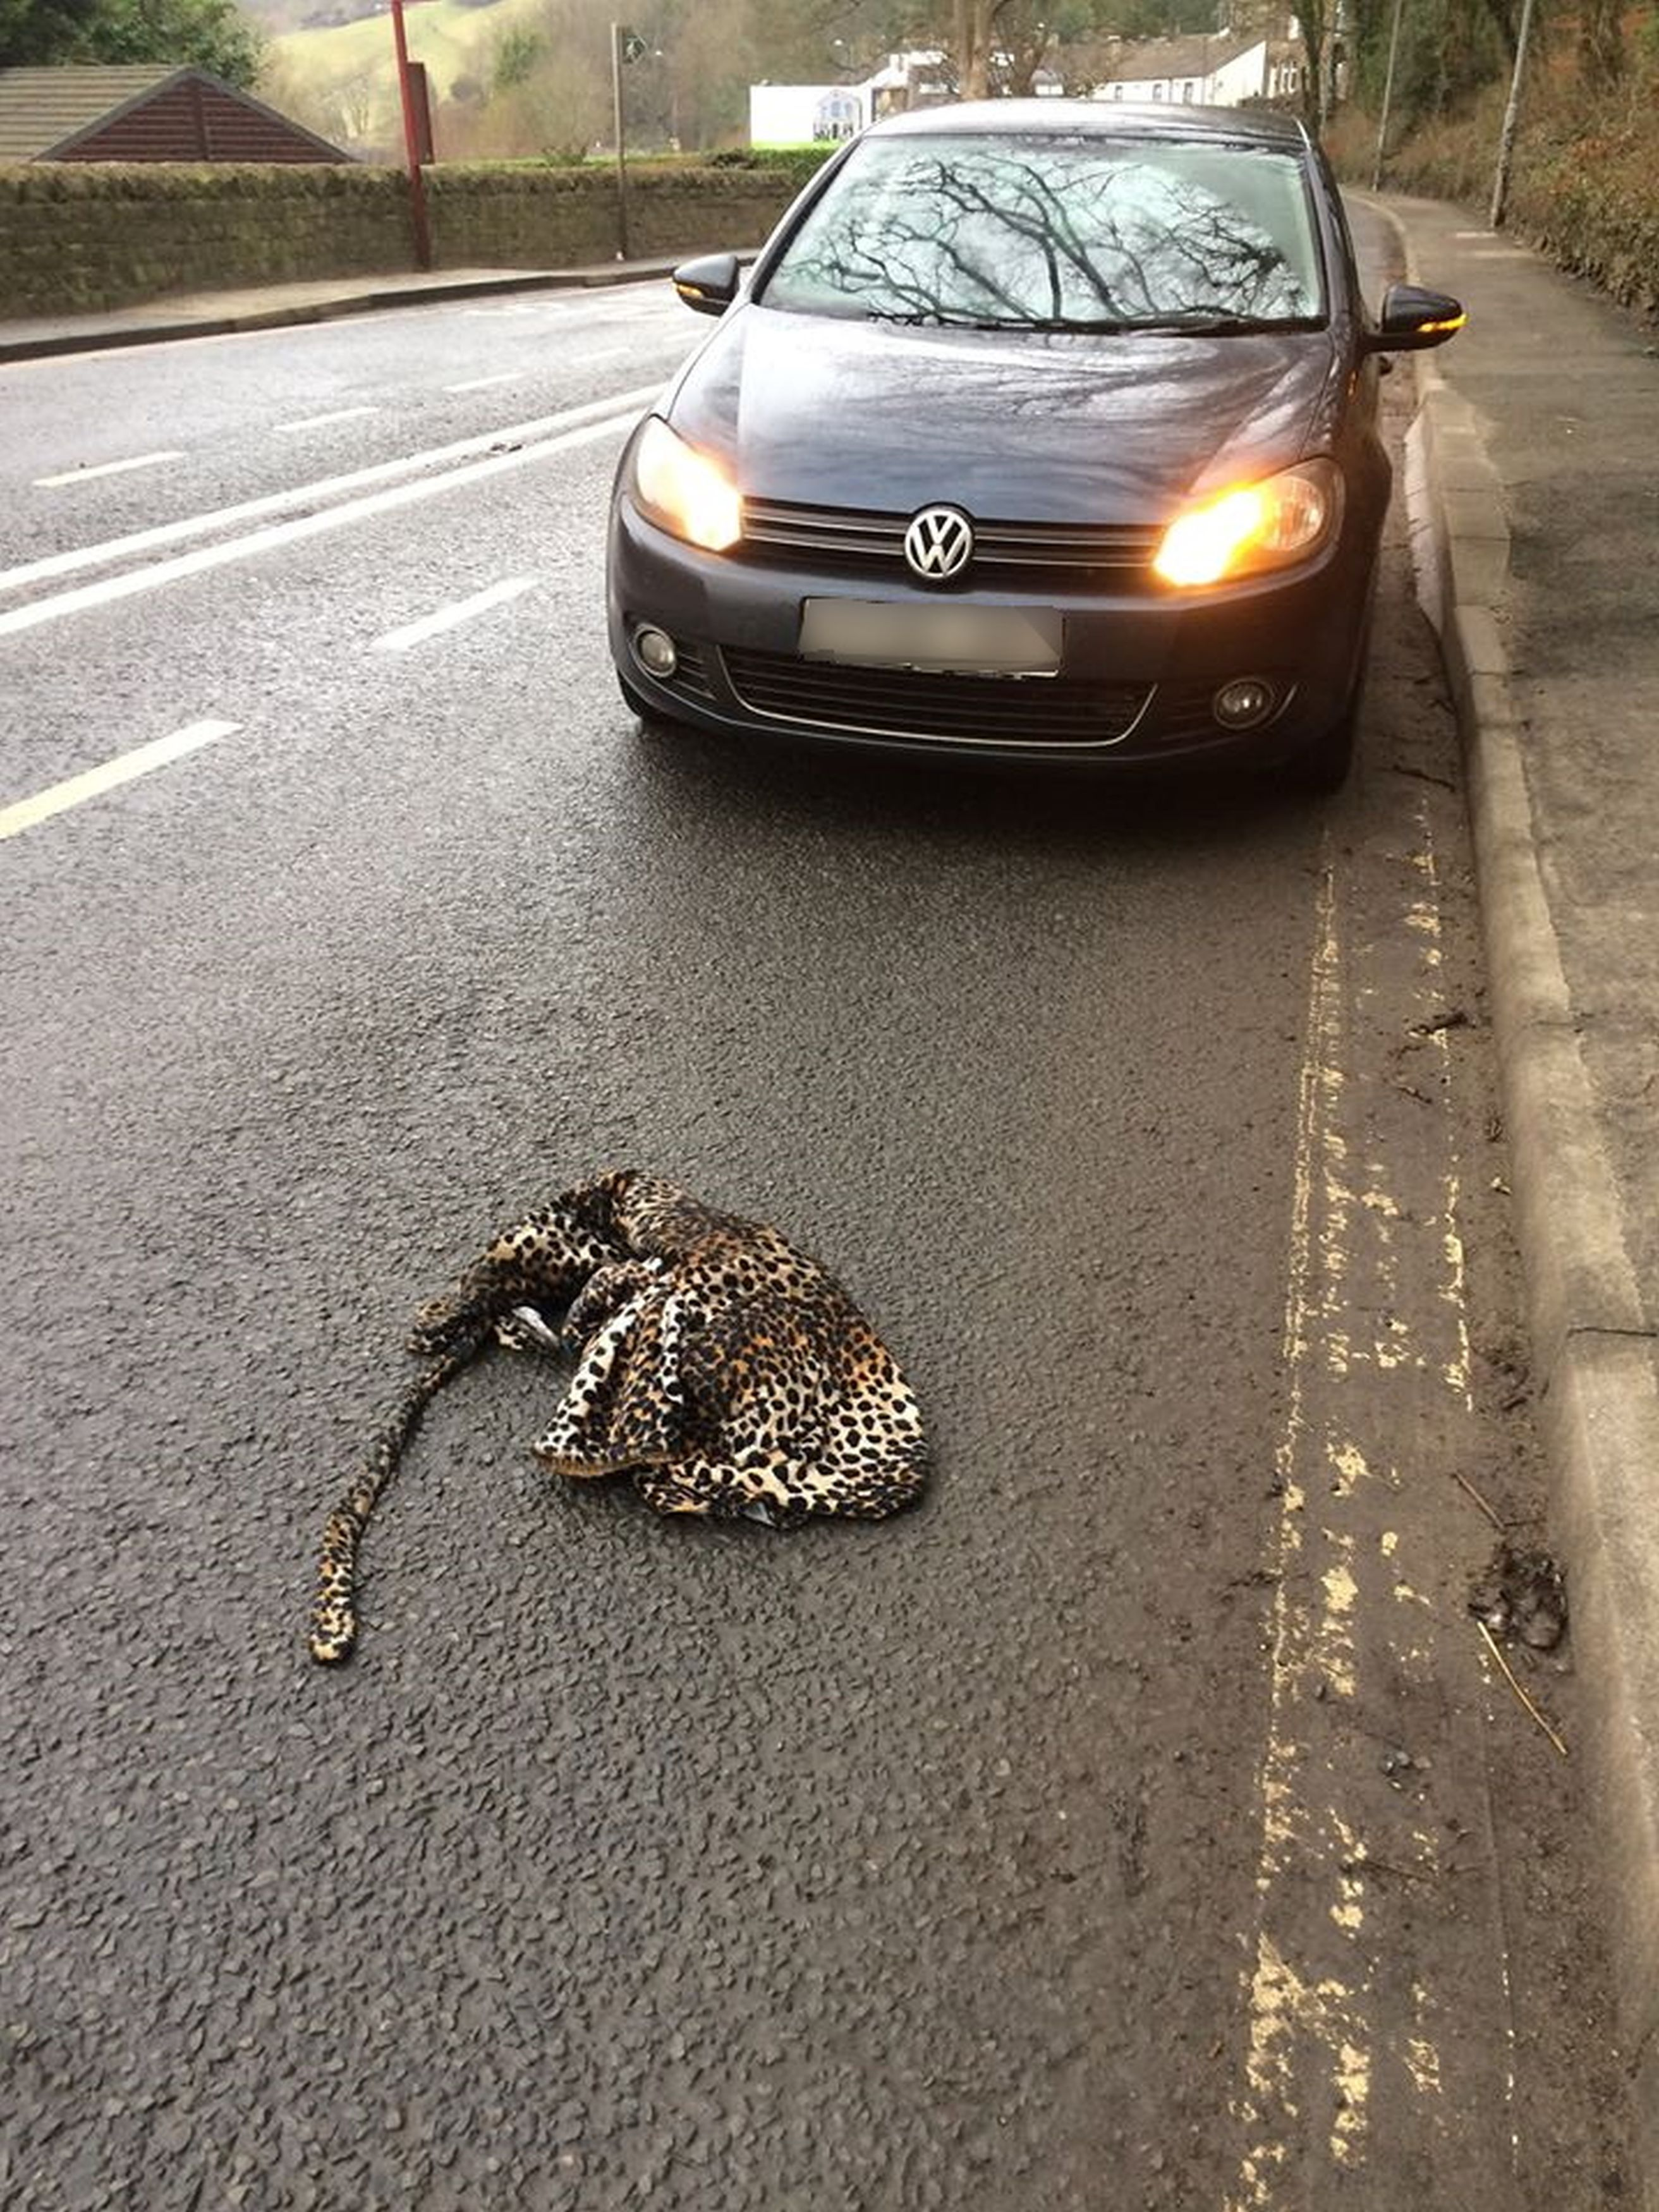 dad thinks he sees leopard on road